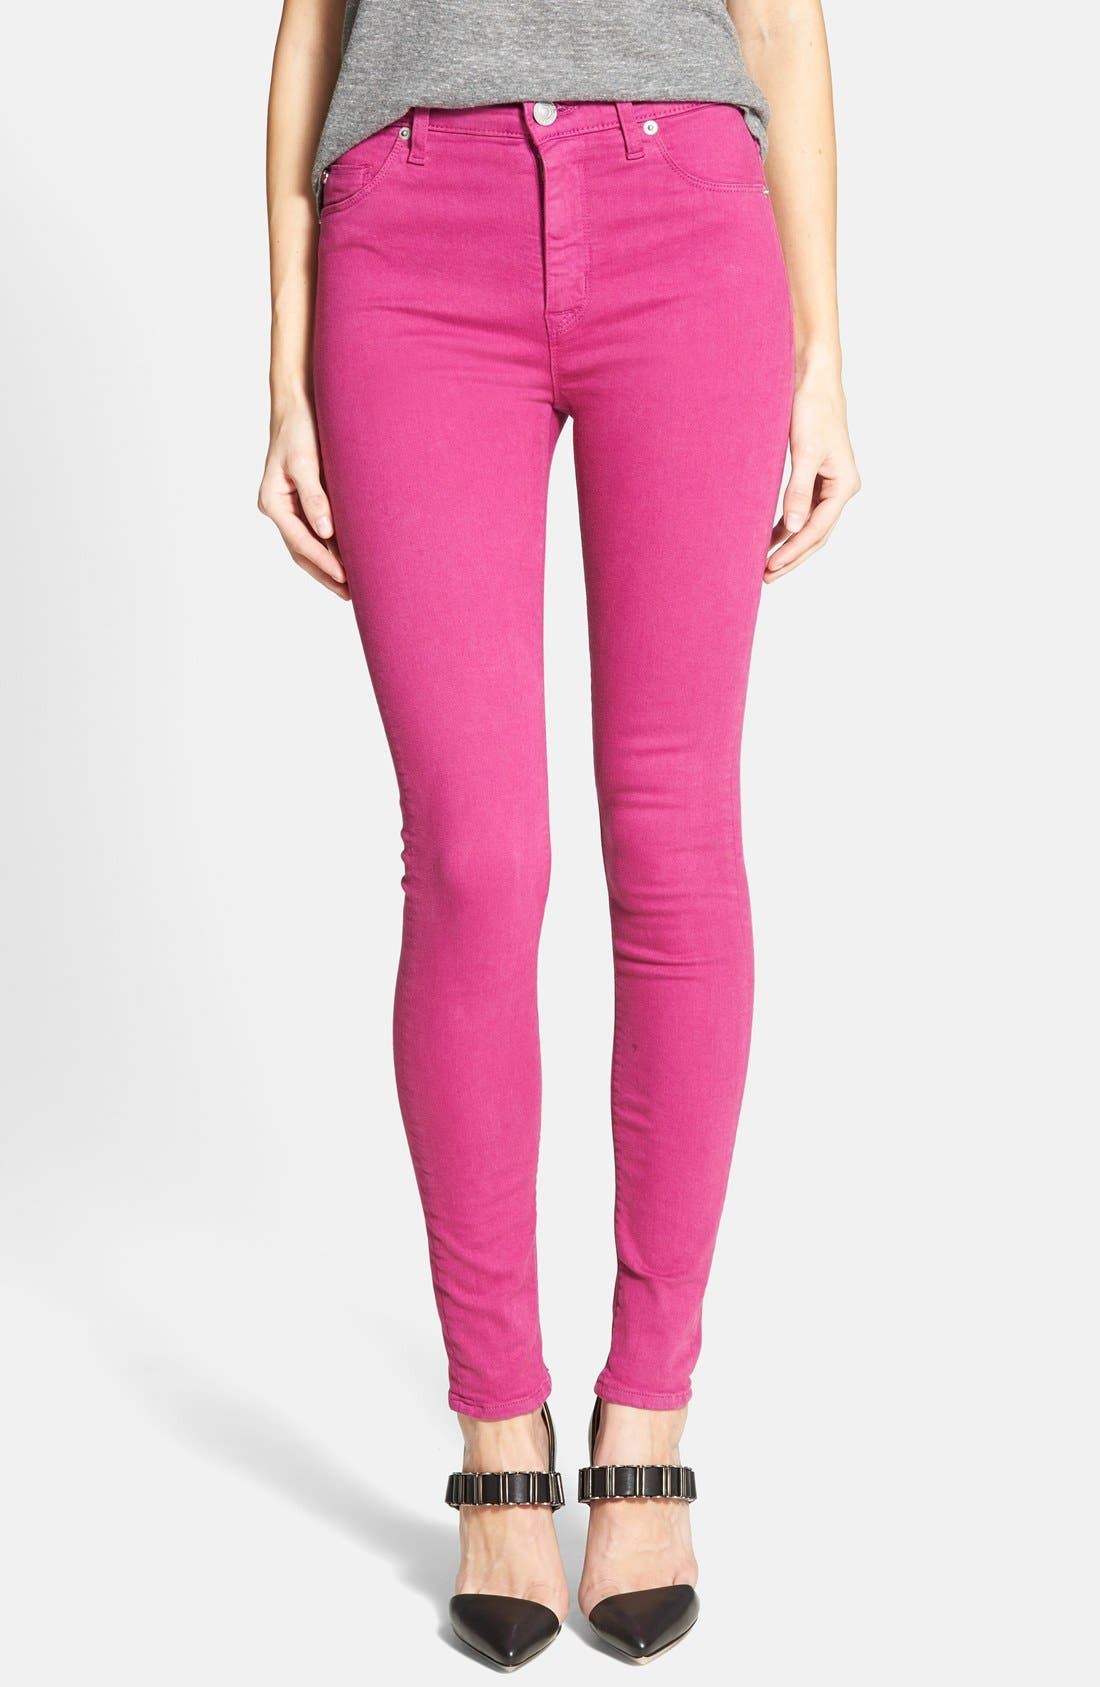 Alternate Image 1 Selected - Hudson Jeans 'Krista' Super Skinny Jeans (Bright Hydrangea)